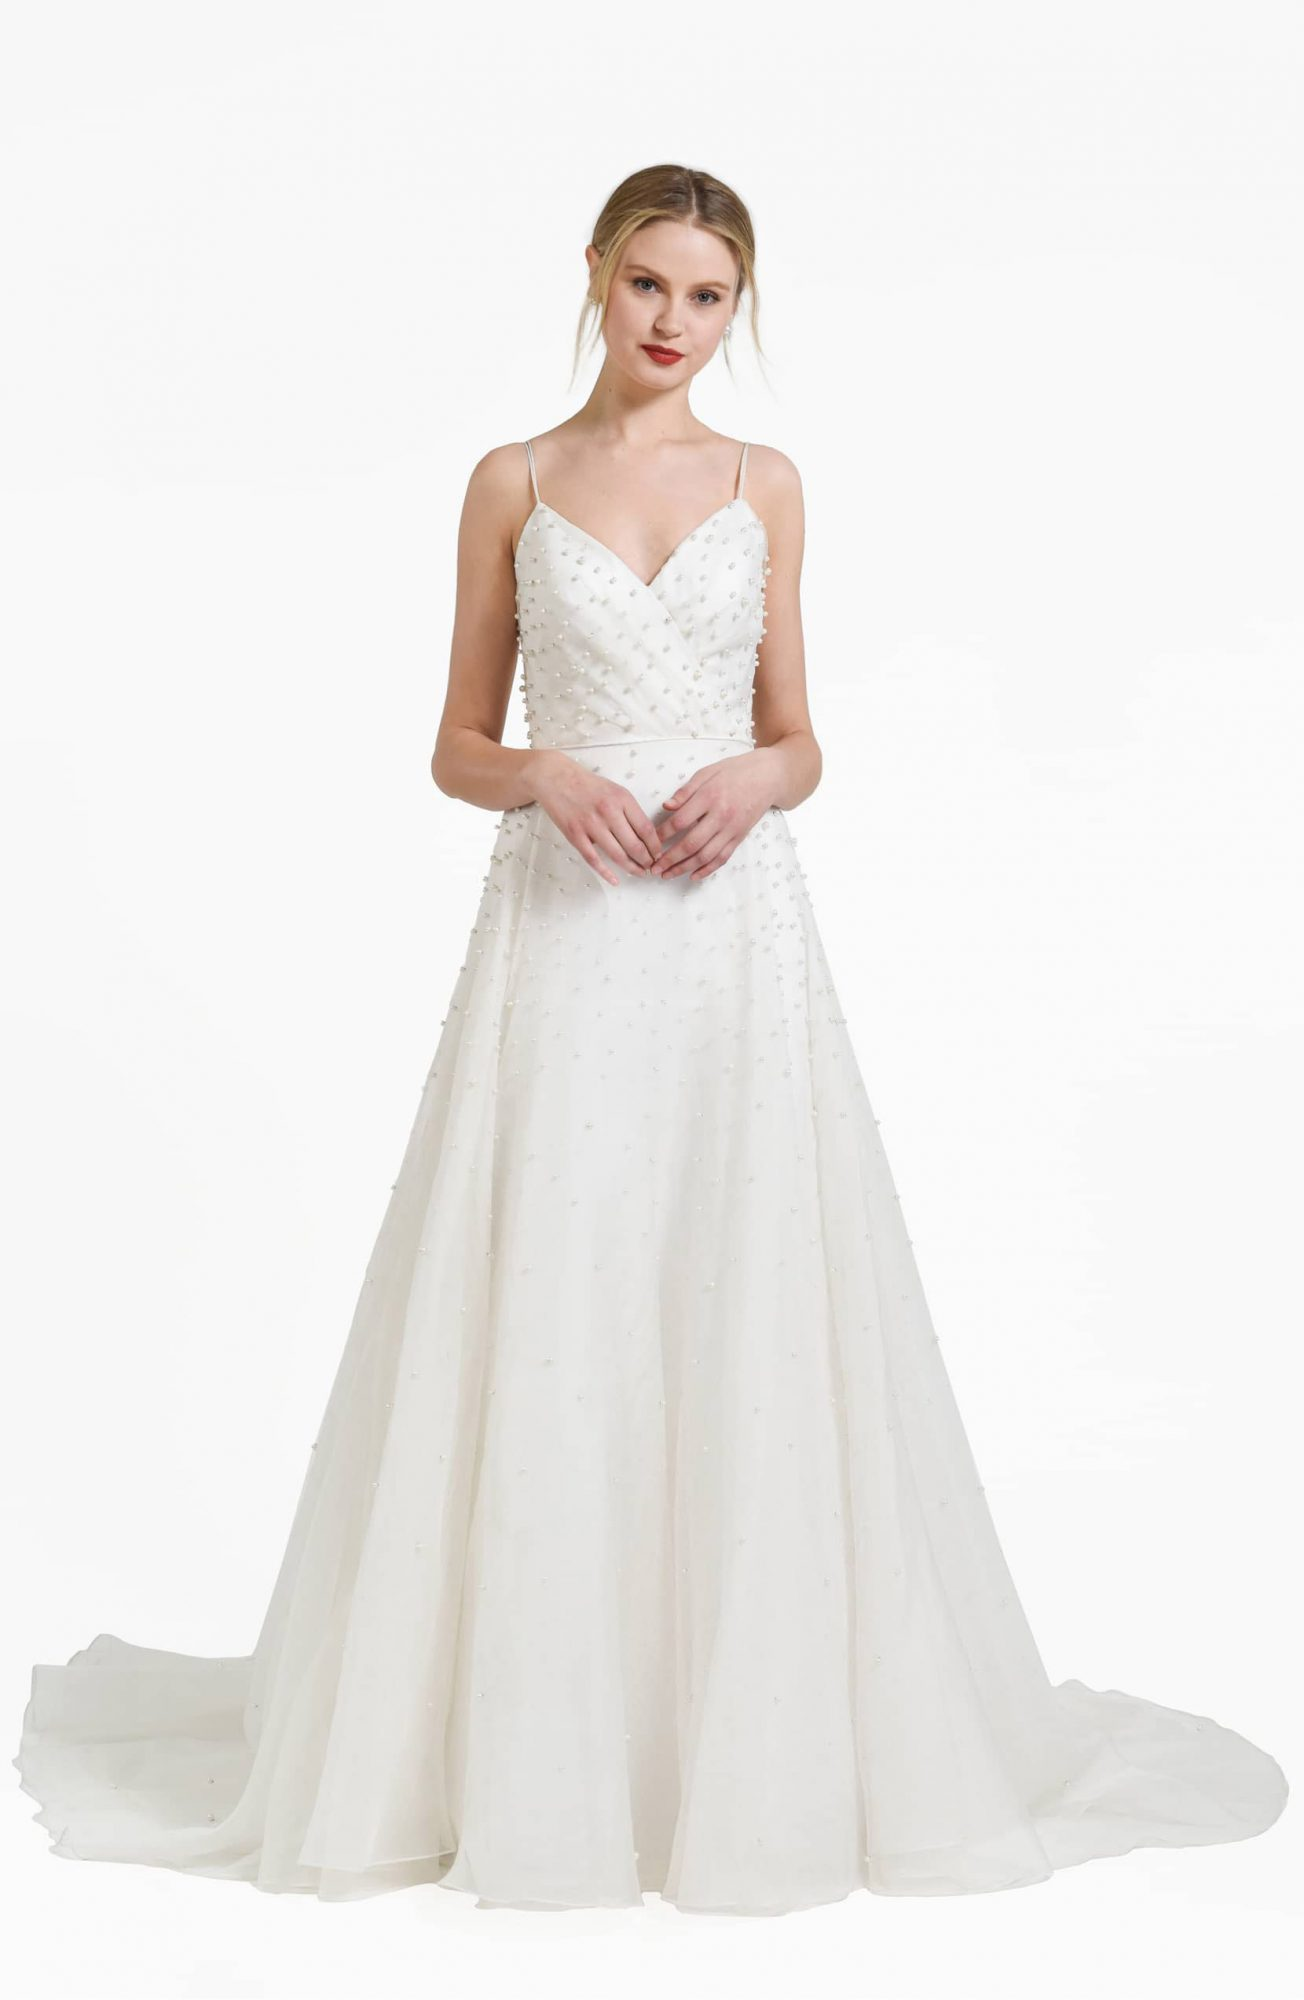 Presley Beaded Organza A-Line Gown